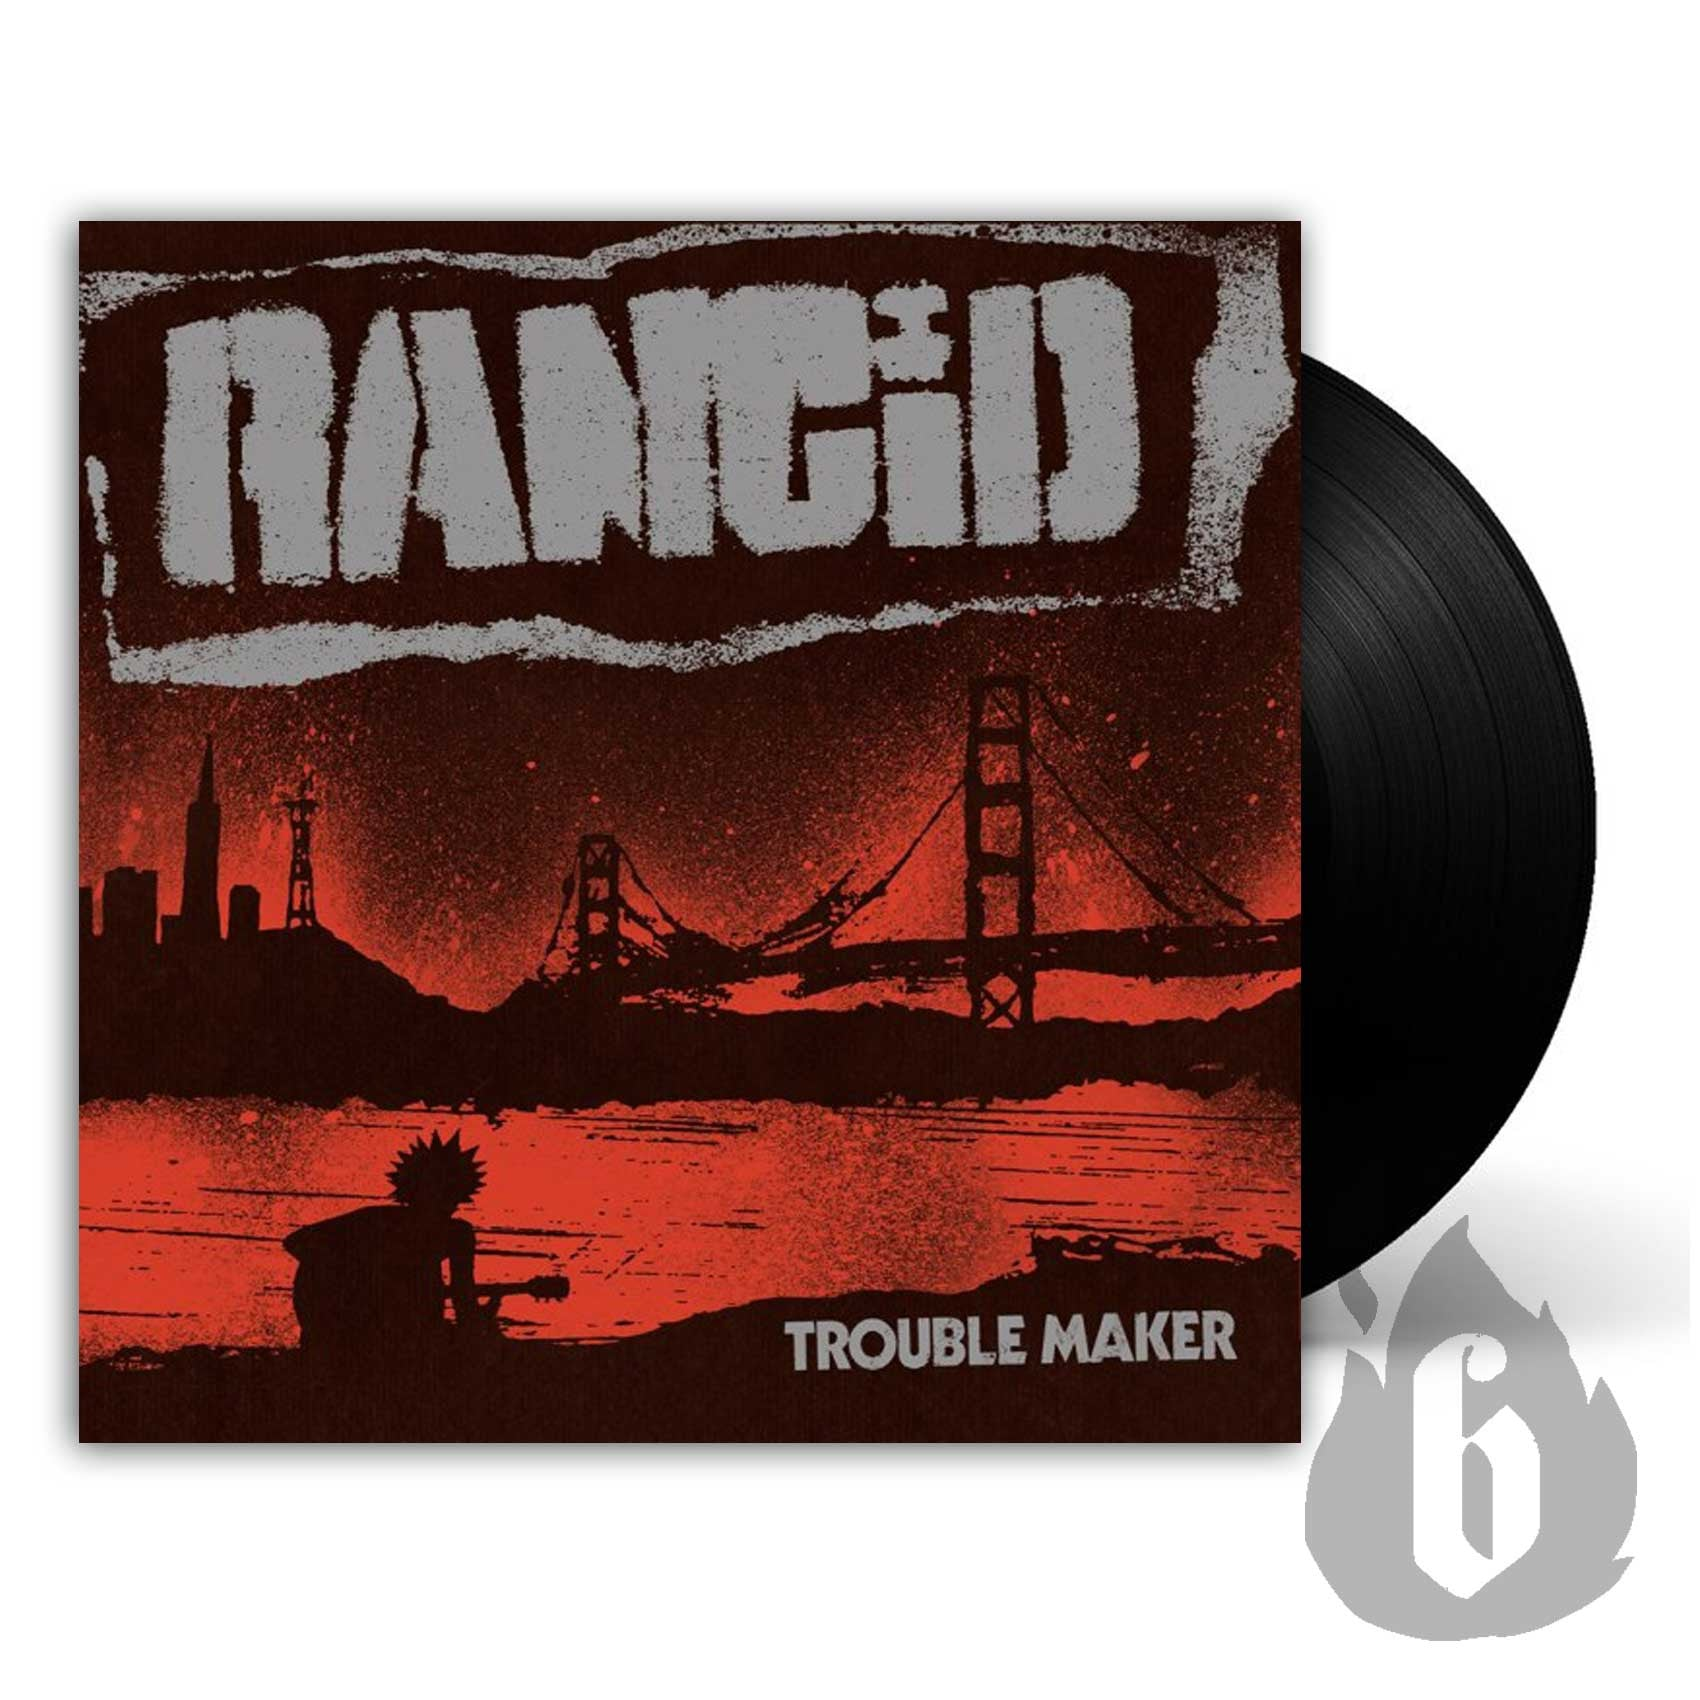 Free download rancid full album